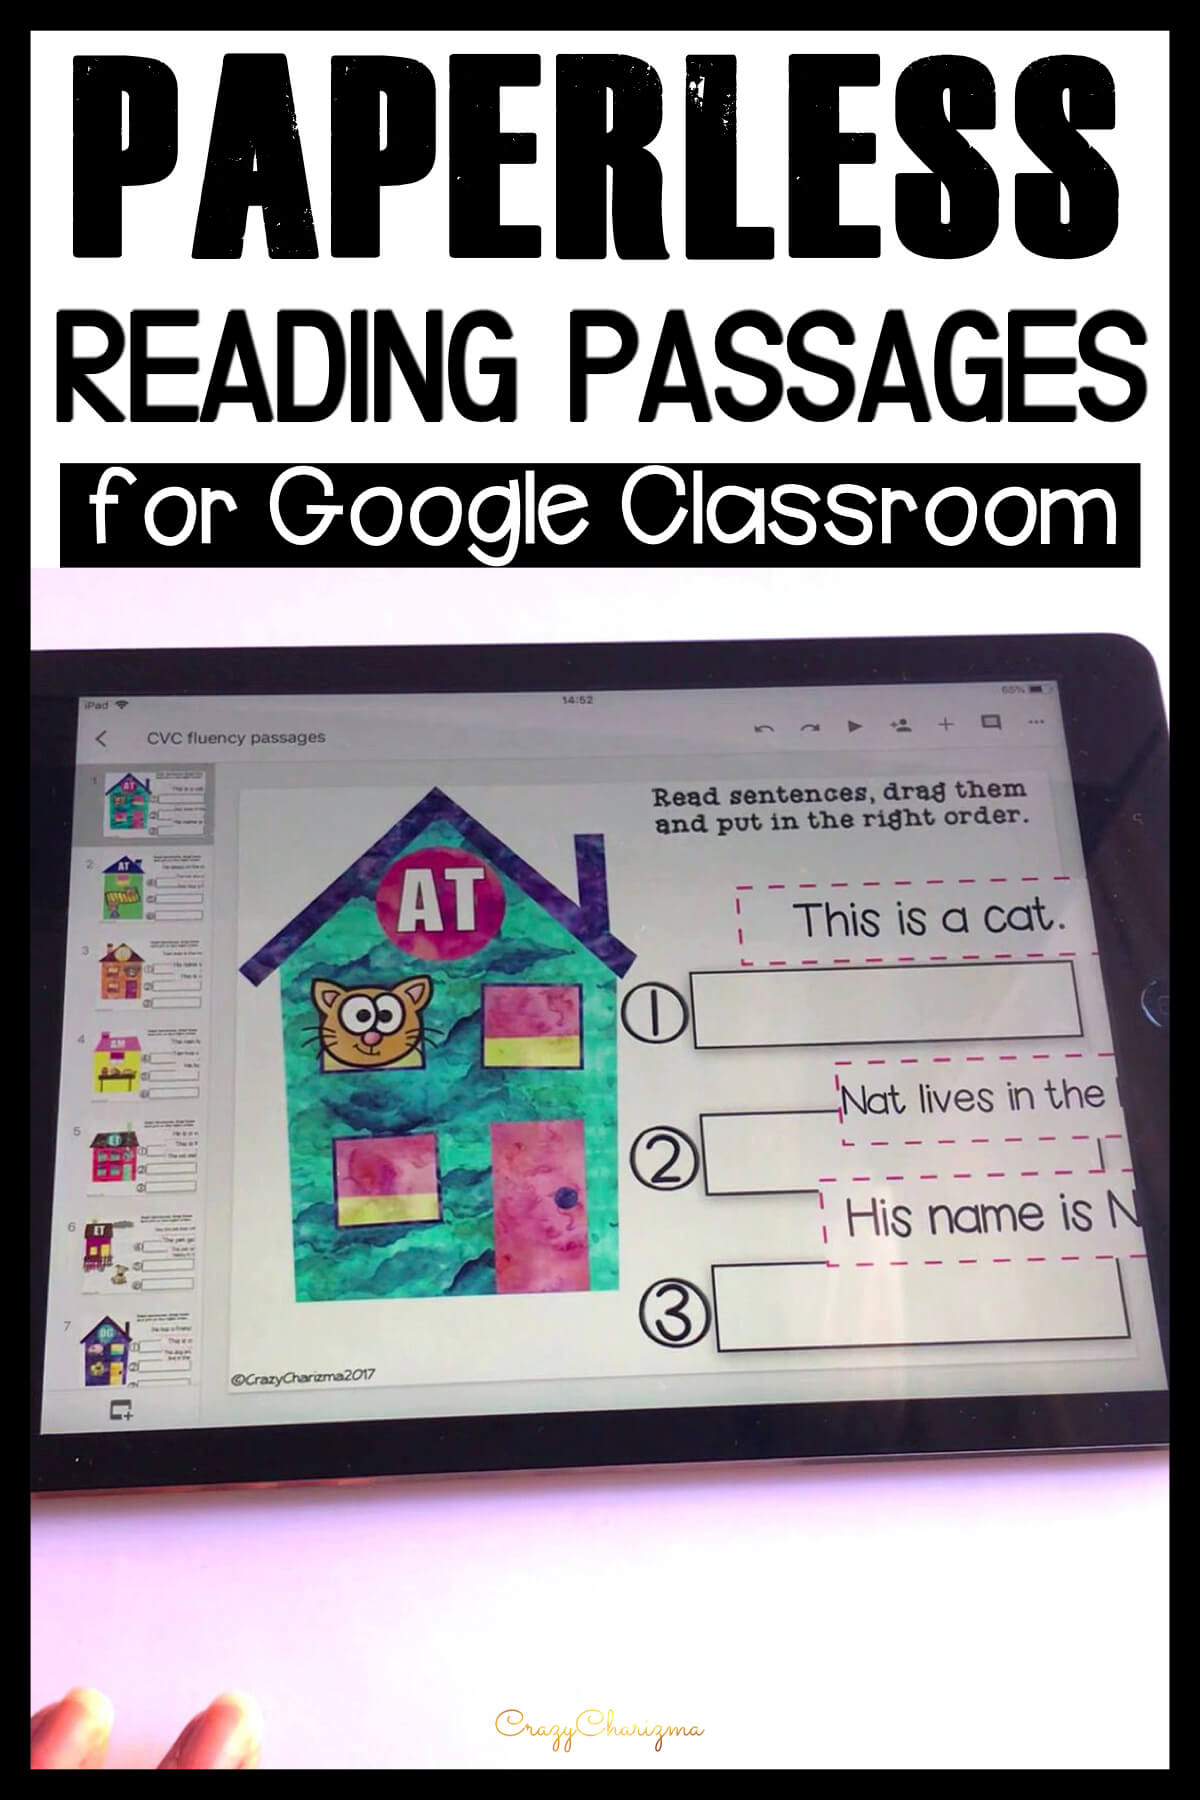 Google Classroom. You got it all set up but what resources can you use with kids? In today's post I'll share what activities you can use in kindergarten, prek and preschool, as well as the first, second and third grades. But before I dive in, let me answer the most frequently asked question. And scroll to get the FREEBIE!